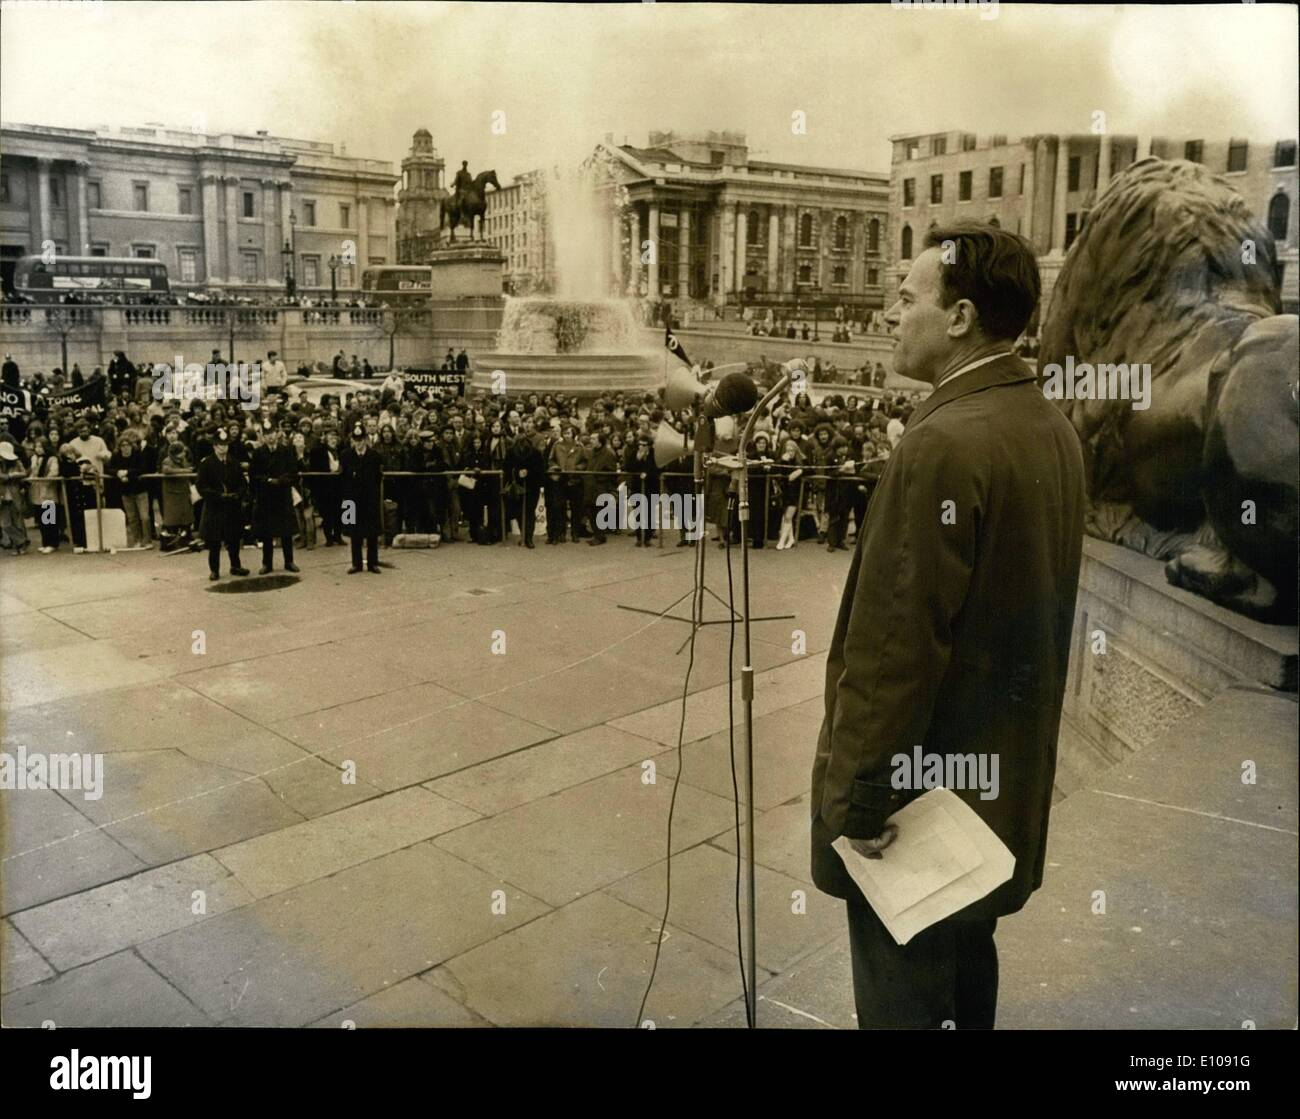 Mar. 03, 1970 - The Campaign For Nuclear Disarmament Annual March Ends In Trafalgar Square: The Campaign for Nuclear Disarmament's annual Easter march which this year began at Crawley New Town finished with a rally in Trafalgar Square at the end of the 30-mile march. Photo shows: Victor Miles, President of the Crawley Trades Council, addressing the rally in Trafalgar Square today. - Stock Image